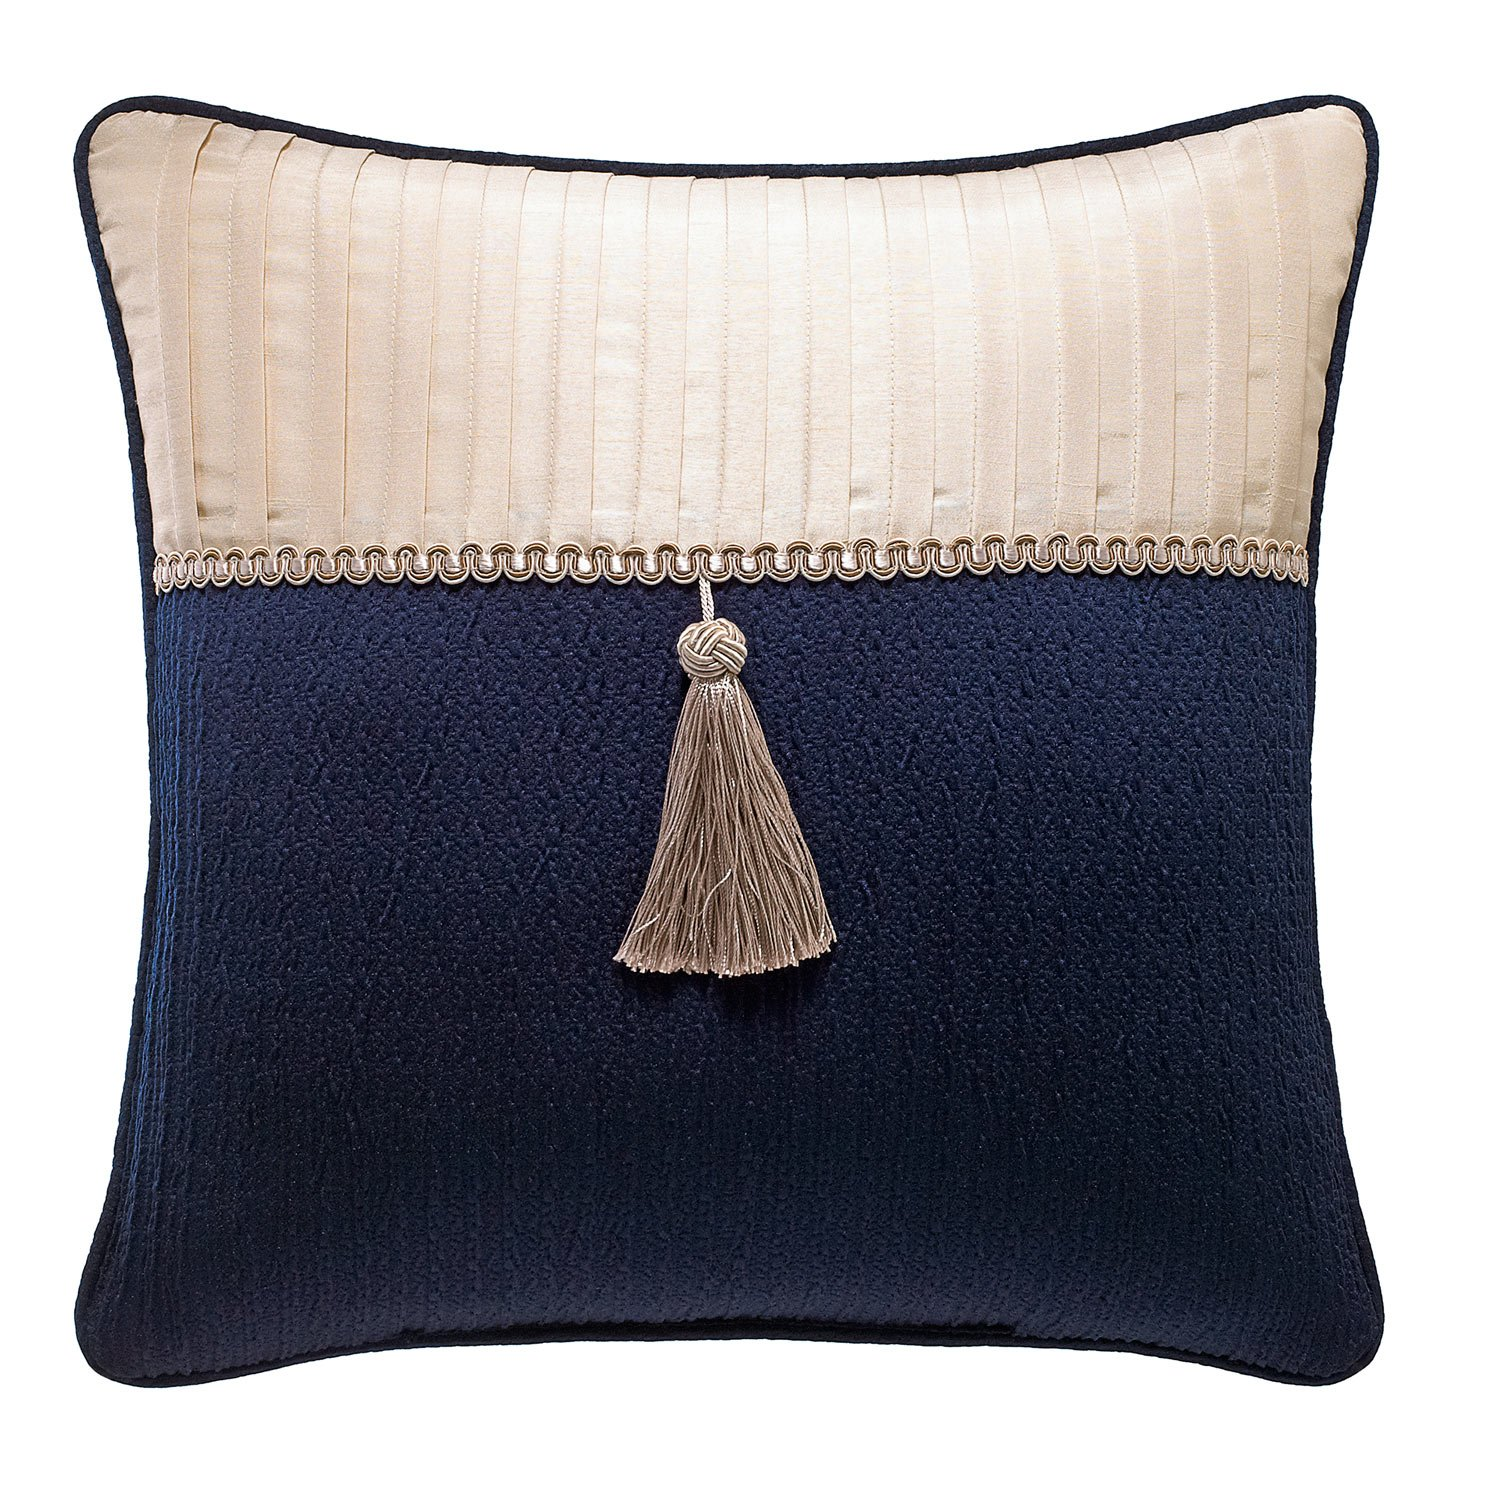 Wayfair_Imperial+Throw+Pillow.jpg